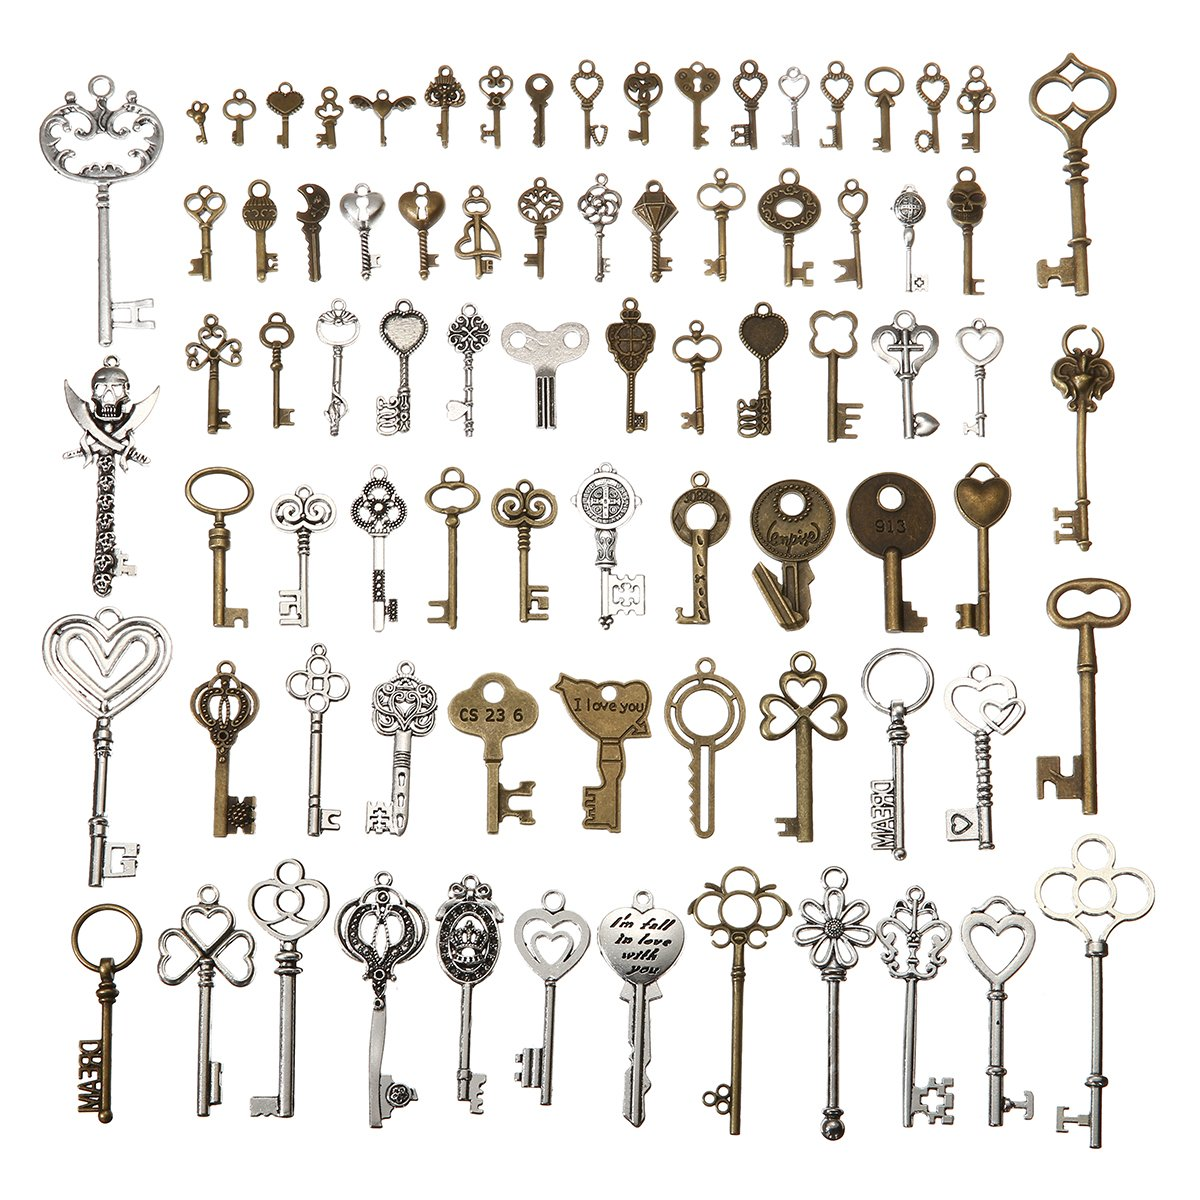 KING DO WAY 69pcs Antique Bronze Vintage Skeleton Keys Charm Set DIY Handmade Accessories Necklace Pendants Jewelry Making Supplies for Wedding Decoration Birthday and Christmas Party 4336819445